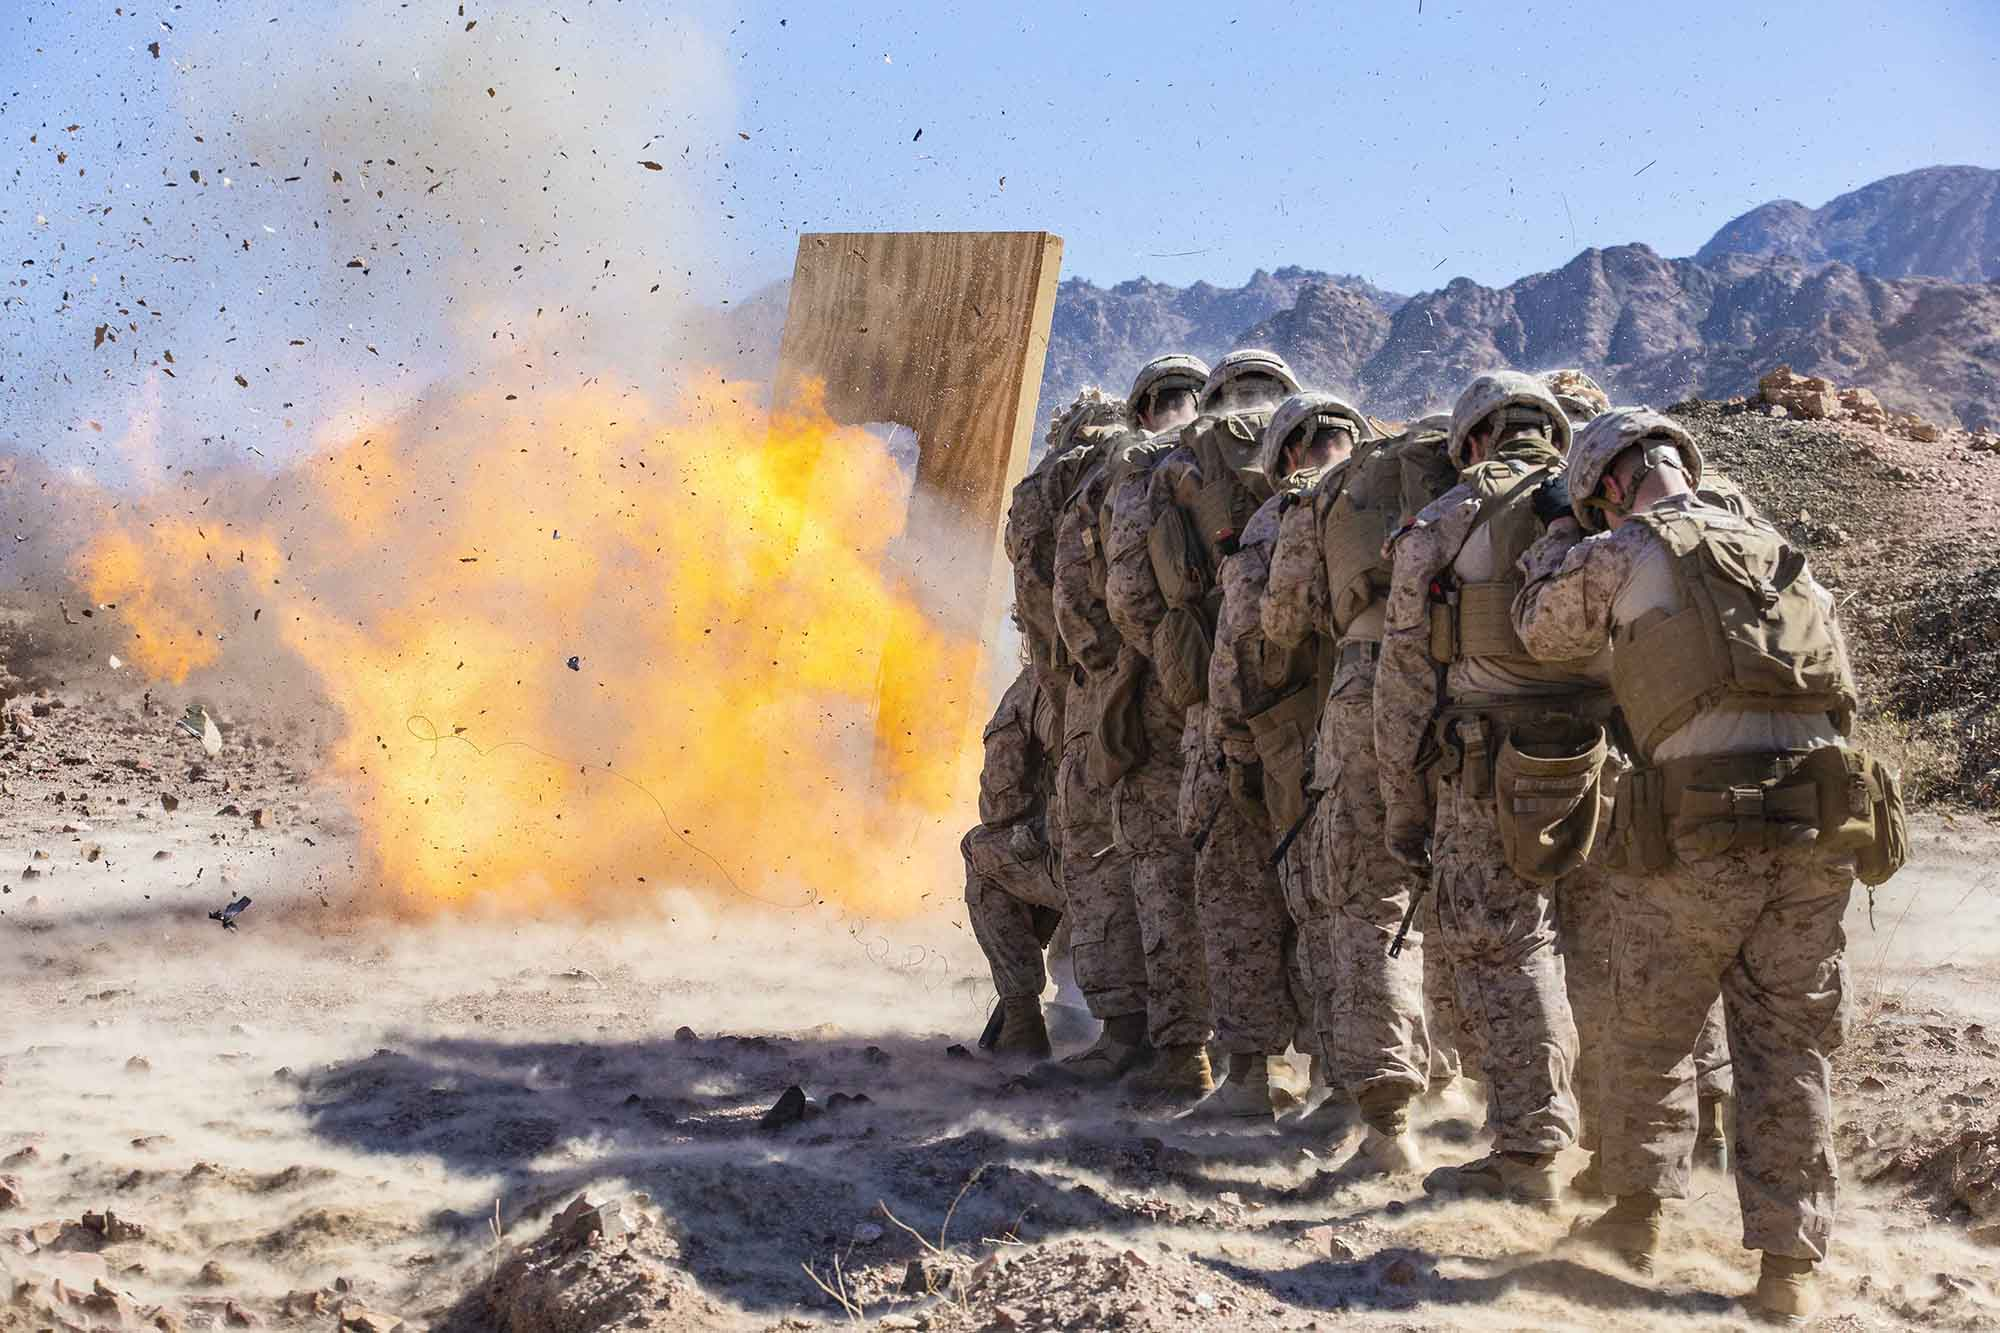 Marines assigned to Special Purpose Marine Air-Ground Task Force-Crisis Response-Central Command breach a door during a demolition range in Jordan, March 6, 2021. (Lance Cpl. Benjamin Aulick/Marine Corps)